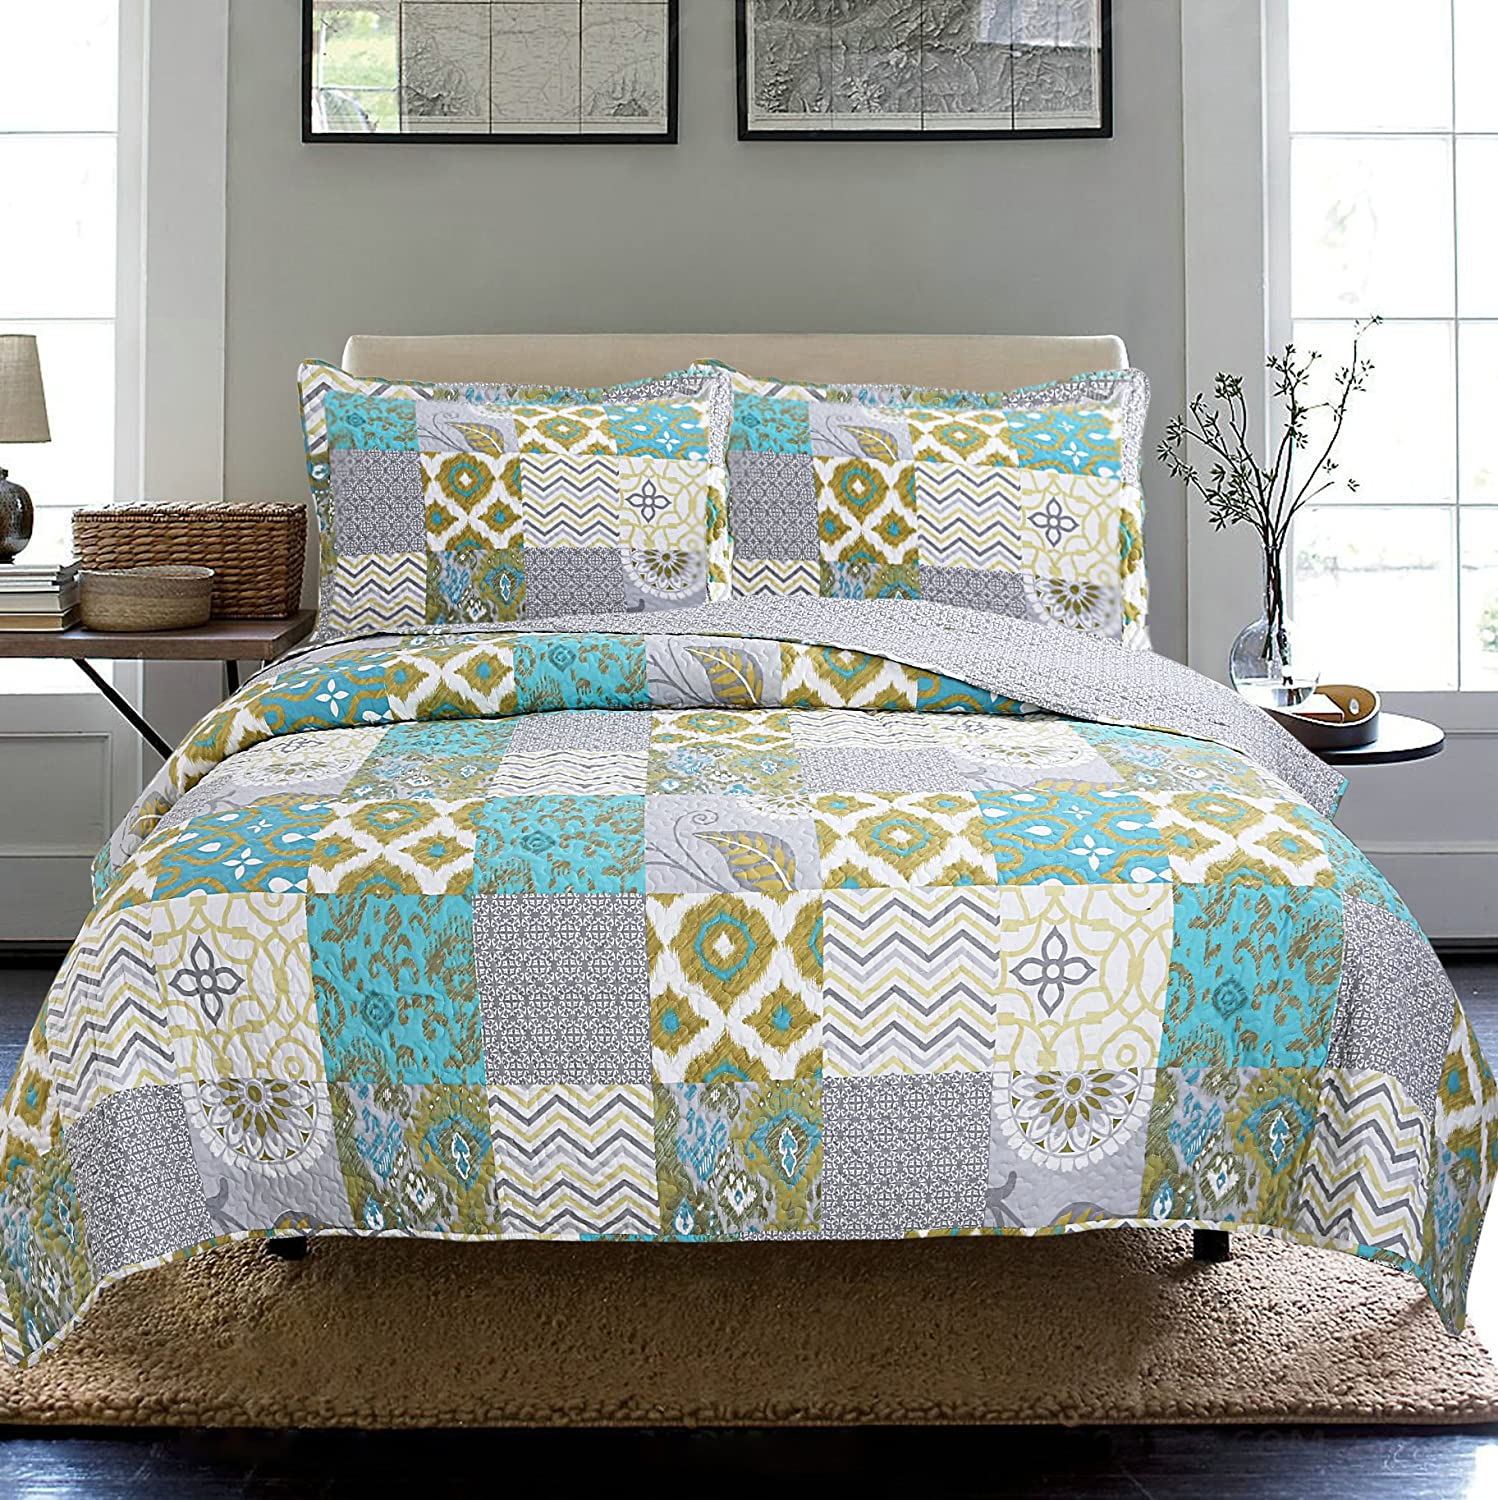 New 3pc Printed Modern Geometric Bedspread Coverlet (King)